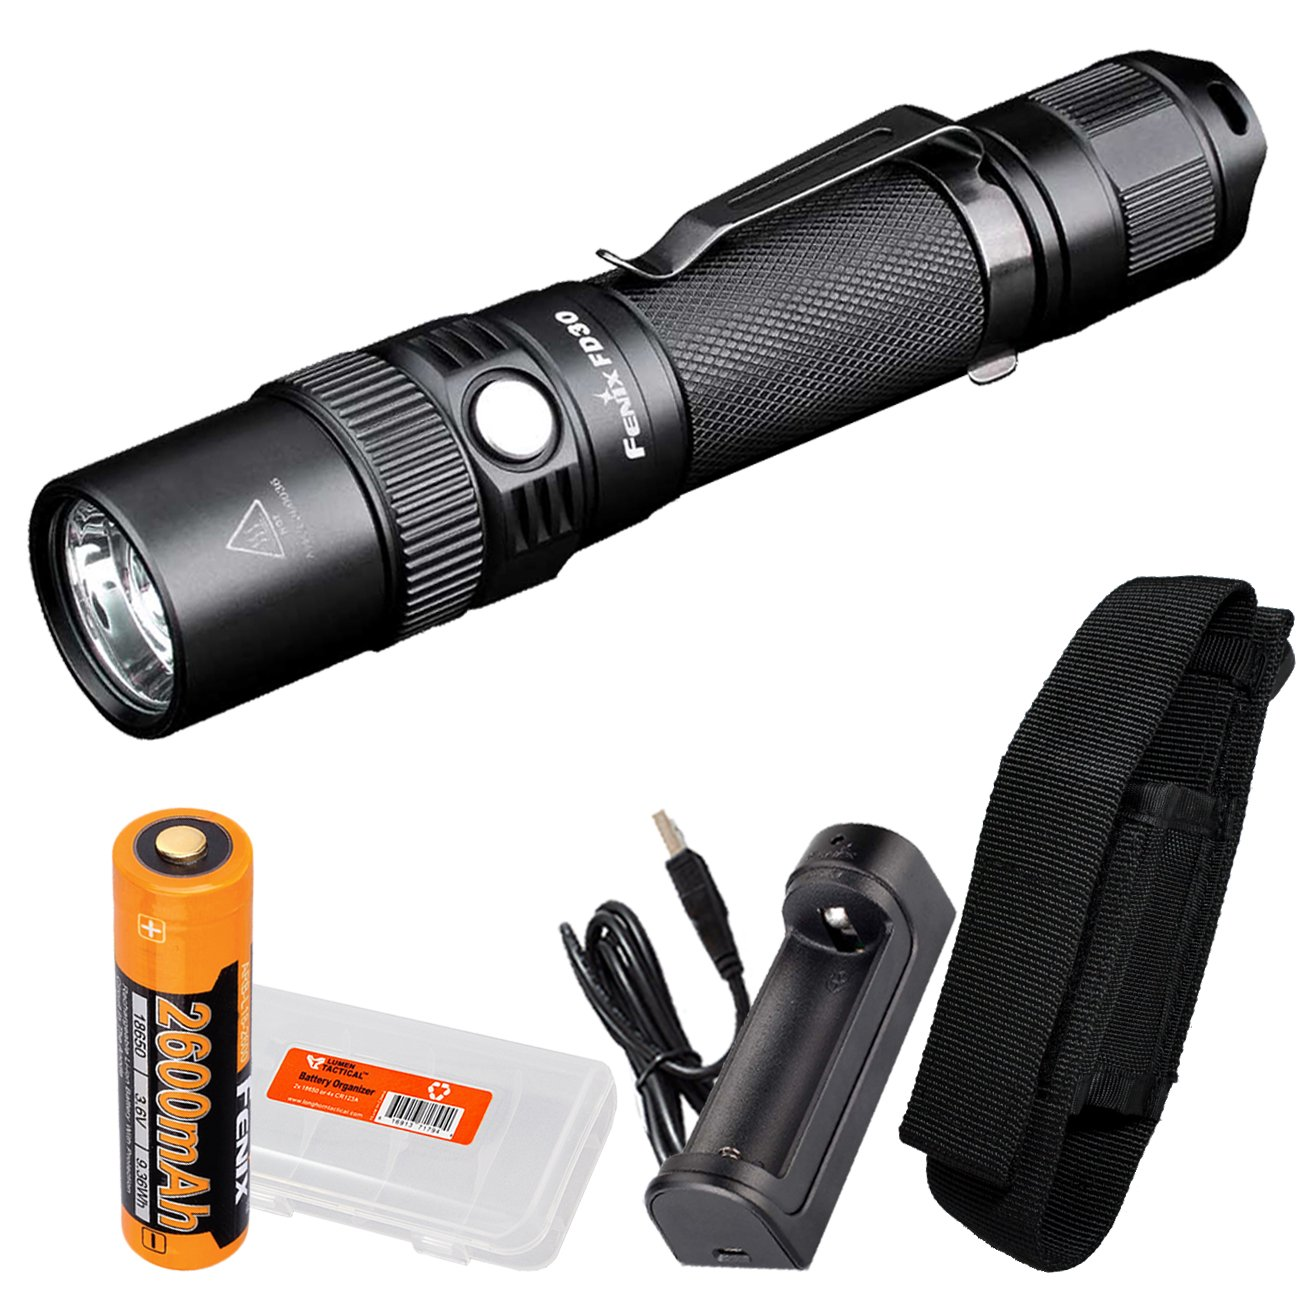 Fenix FD30 900 Lumen Zoomable Rechargeable Tactical LED Flashlight with Fenix 18650 Battery, ARE-X1 Charger and LumenTac Battery Organizer